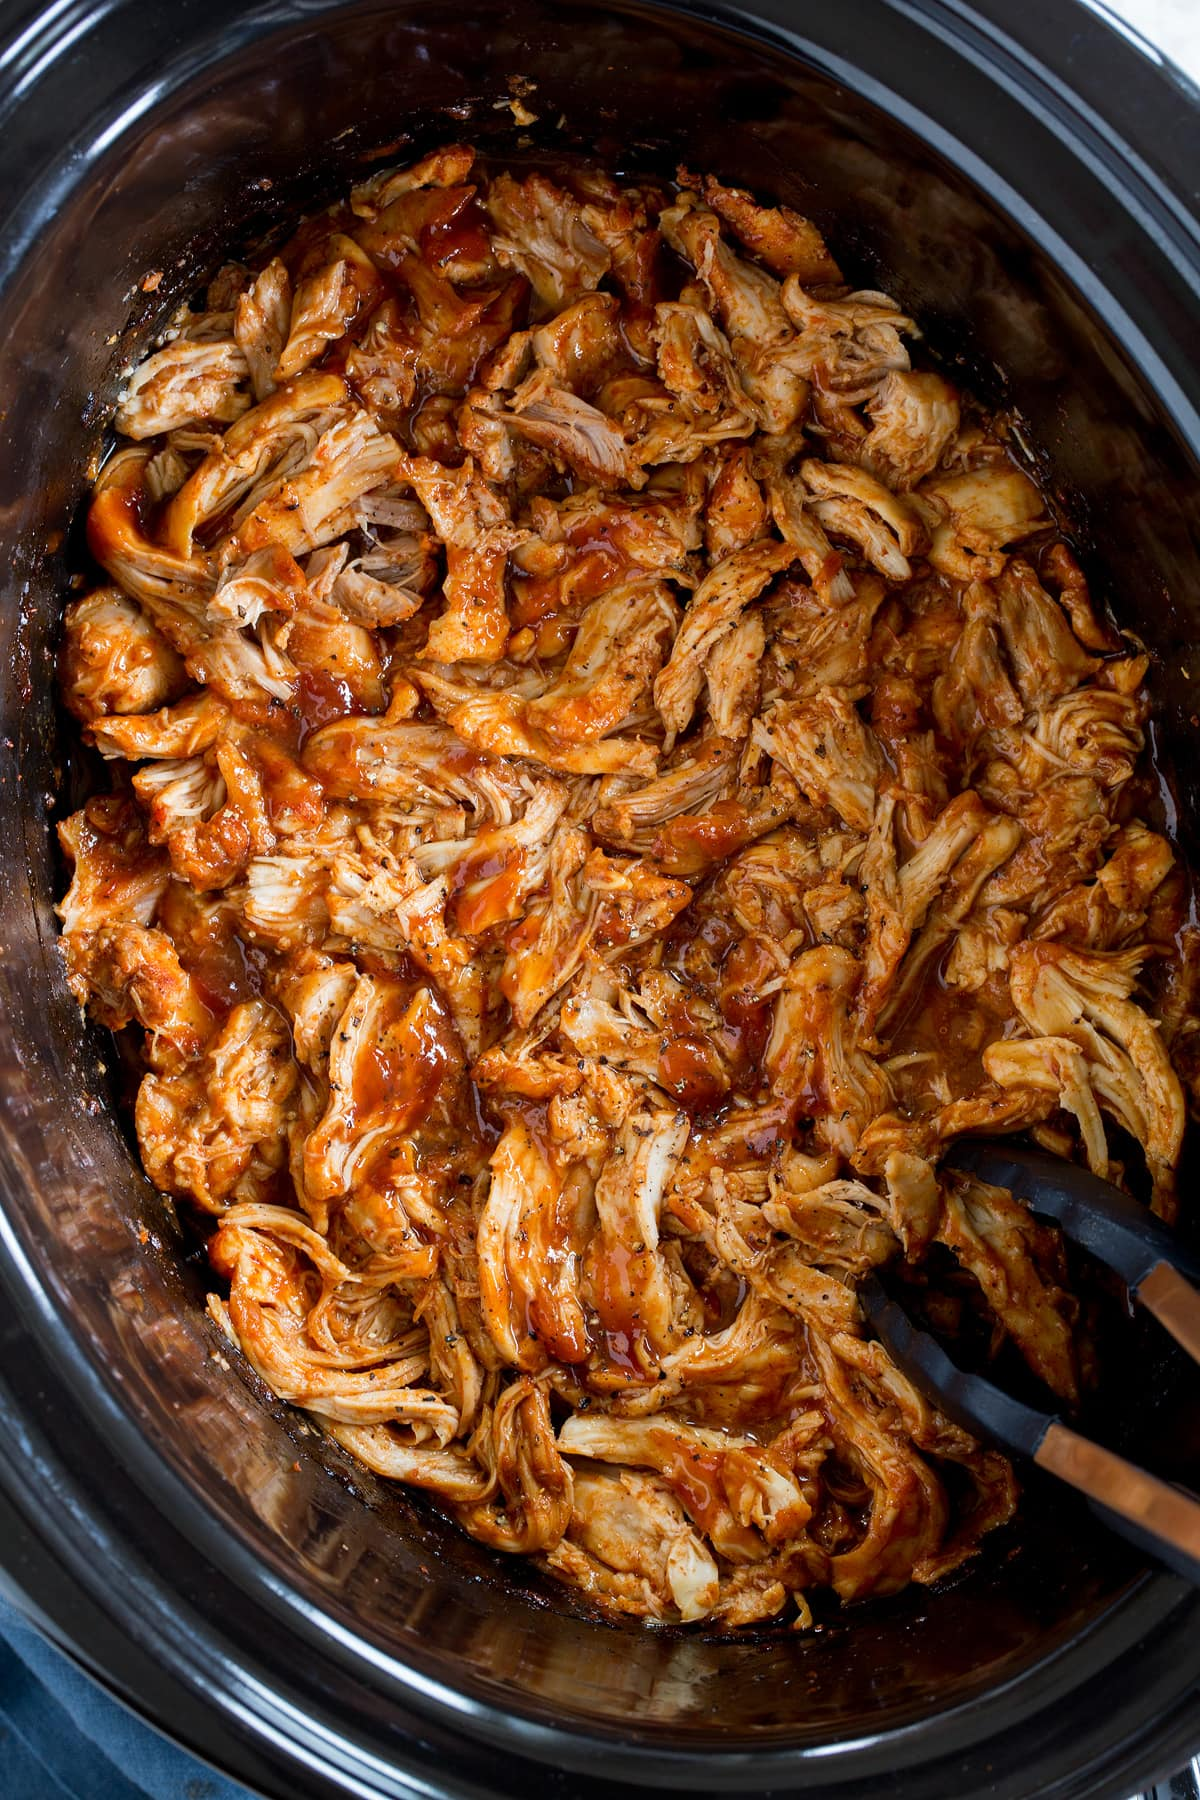 Photo: Slow cooker barbecue chicken in a black oval crockpot insert. Shown from overhead.